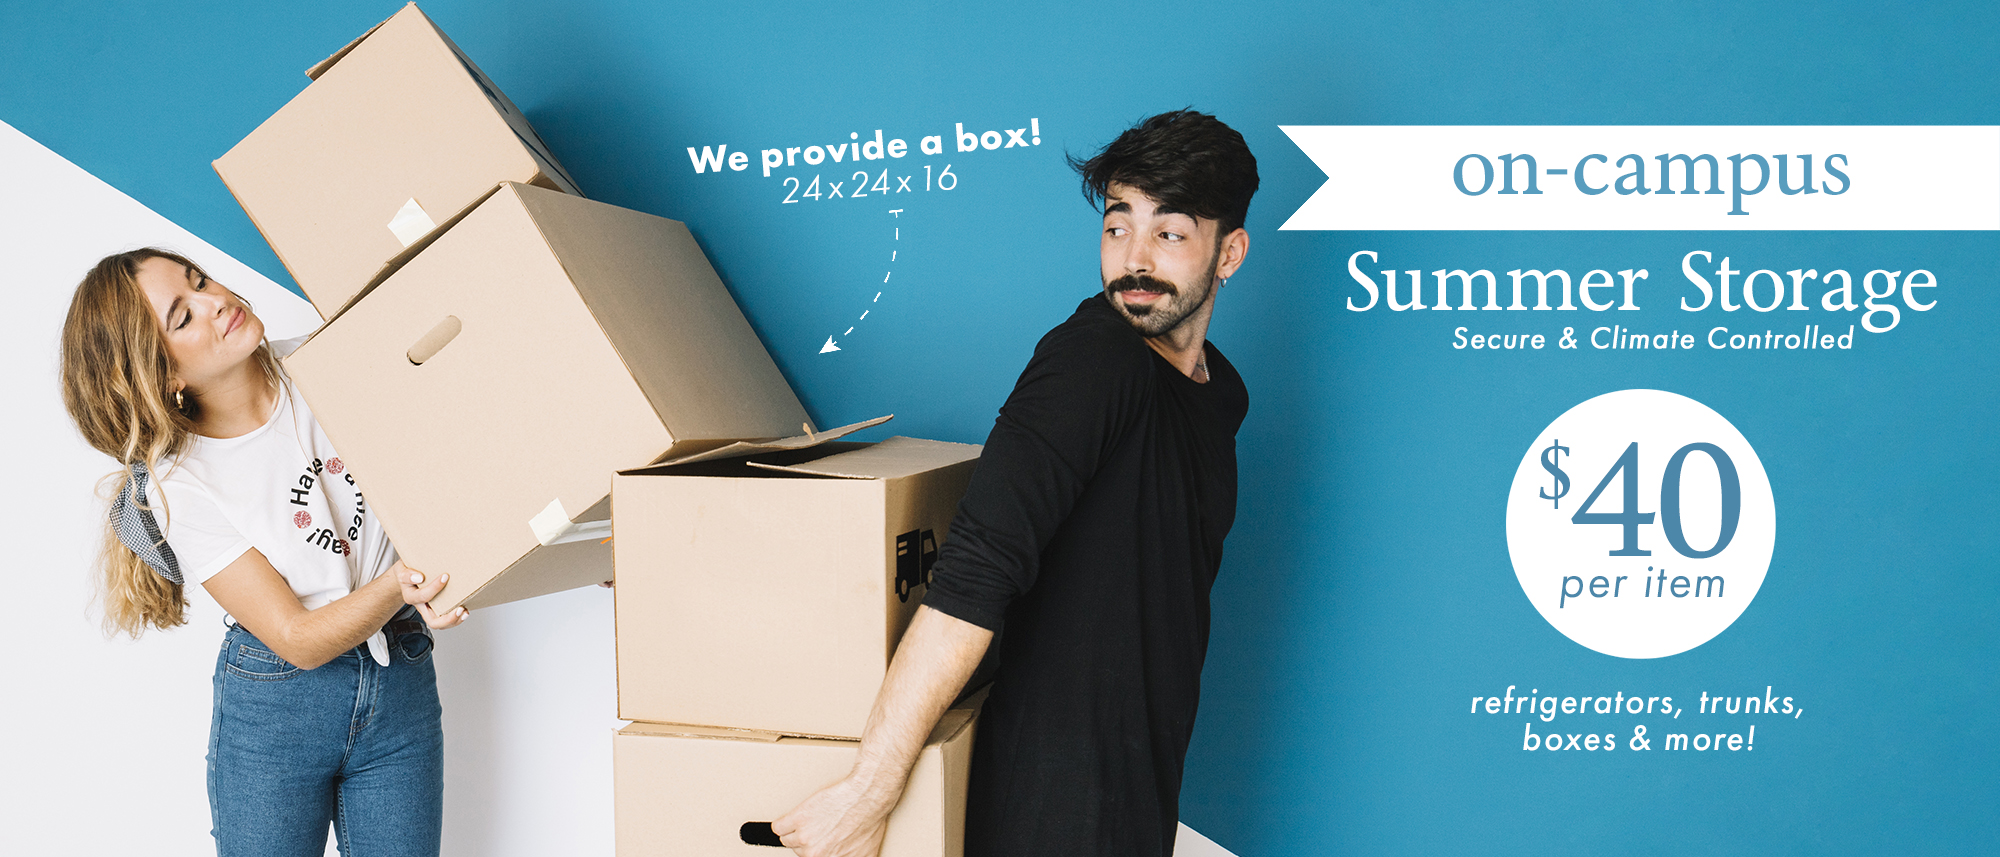 On-Campus Summer Storage. Secure & Climate Controlled. $40 per item. Refrigerators, trunks, boxes & more! We provide a box! 24x24x16.